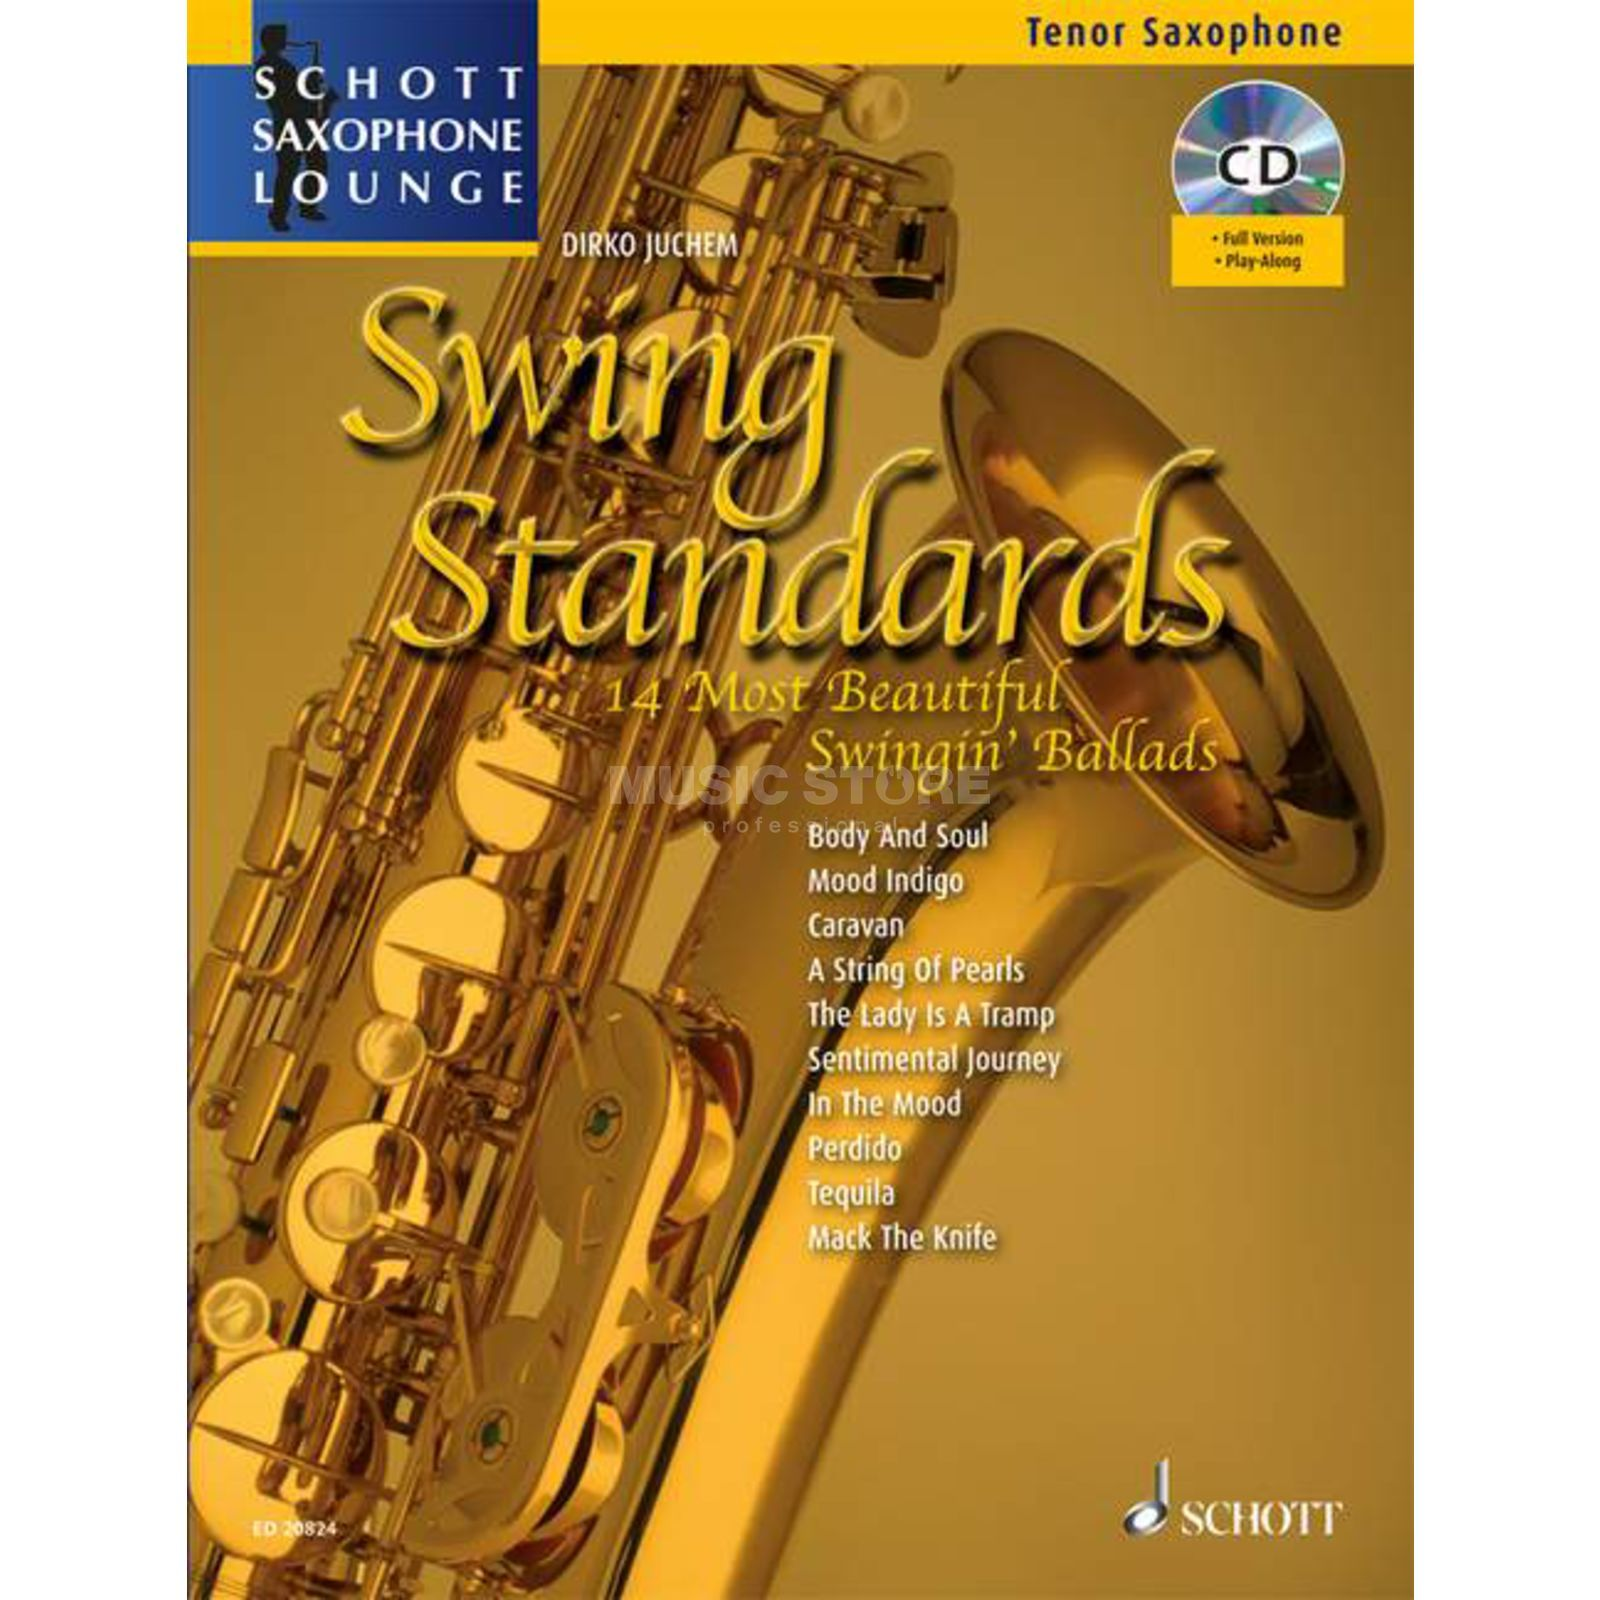 Schott Music Swing Standards - Tenor-Sax Juchem, Buch/CD Product Image